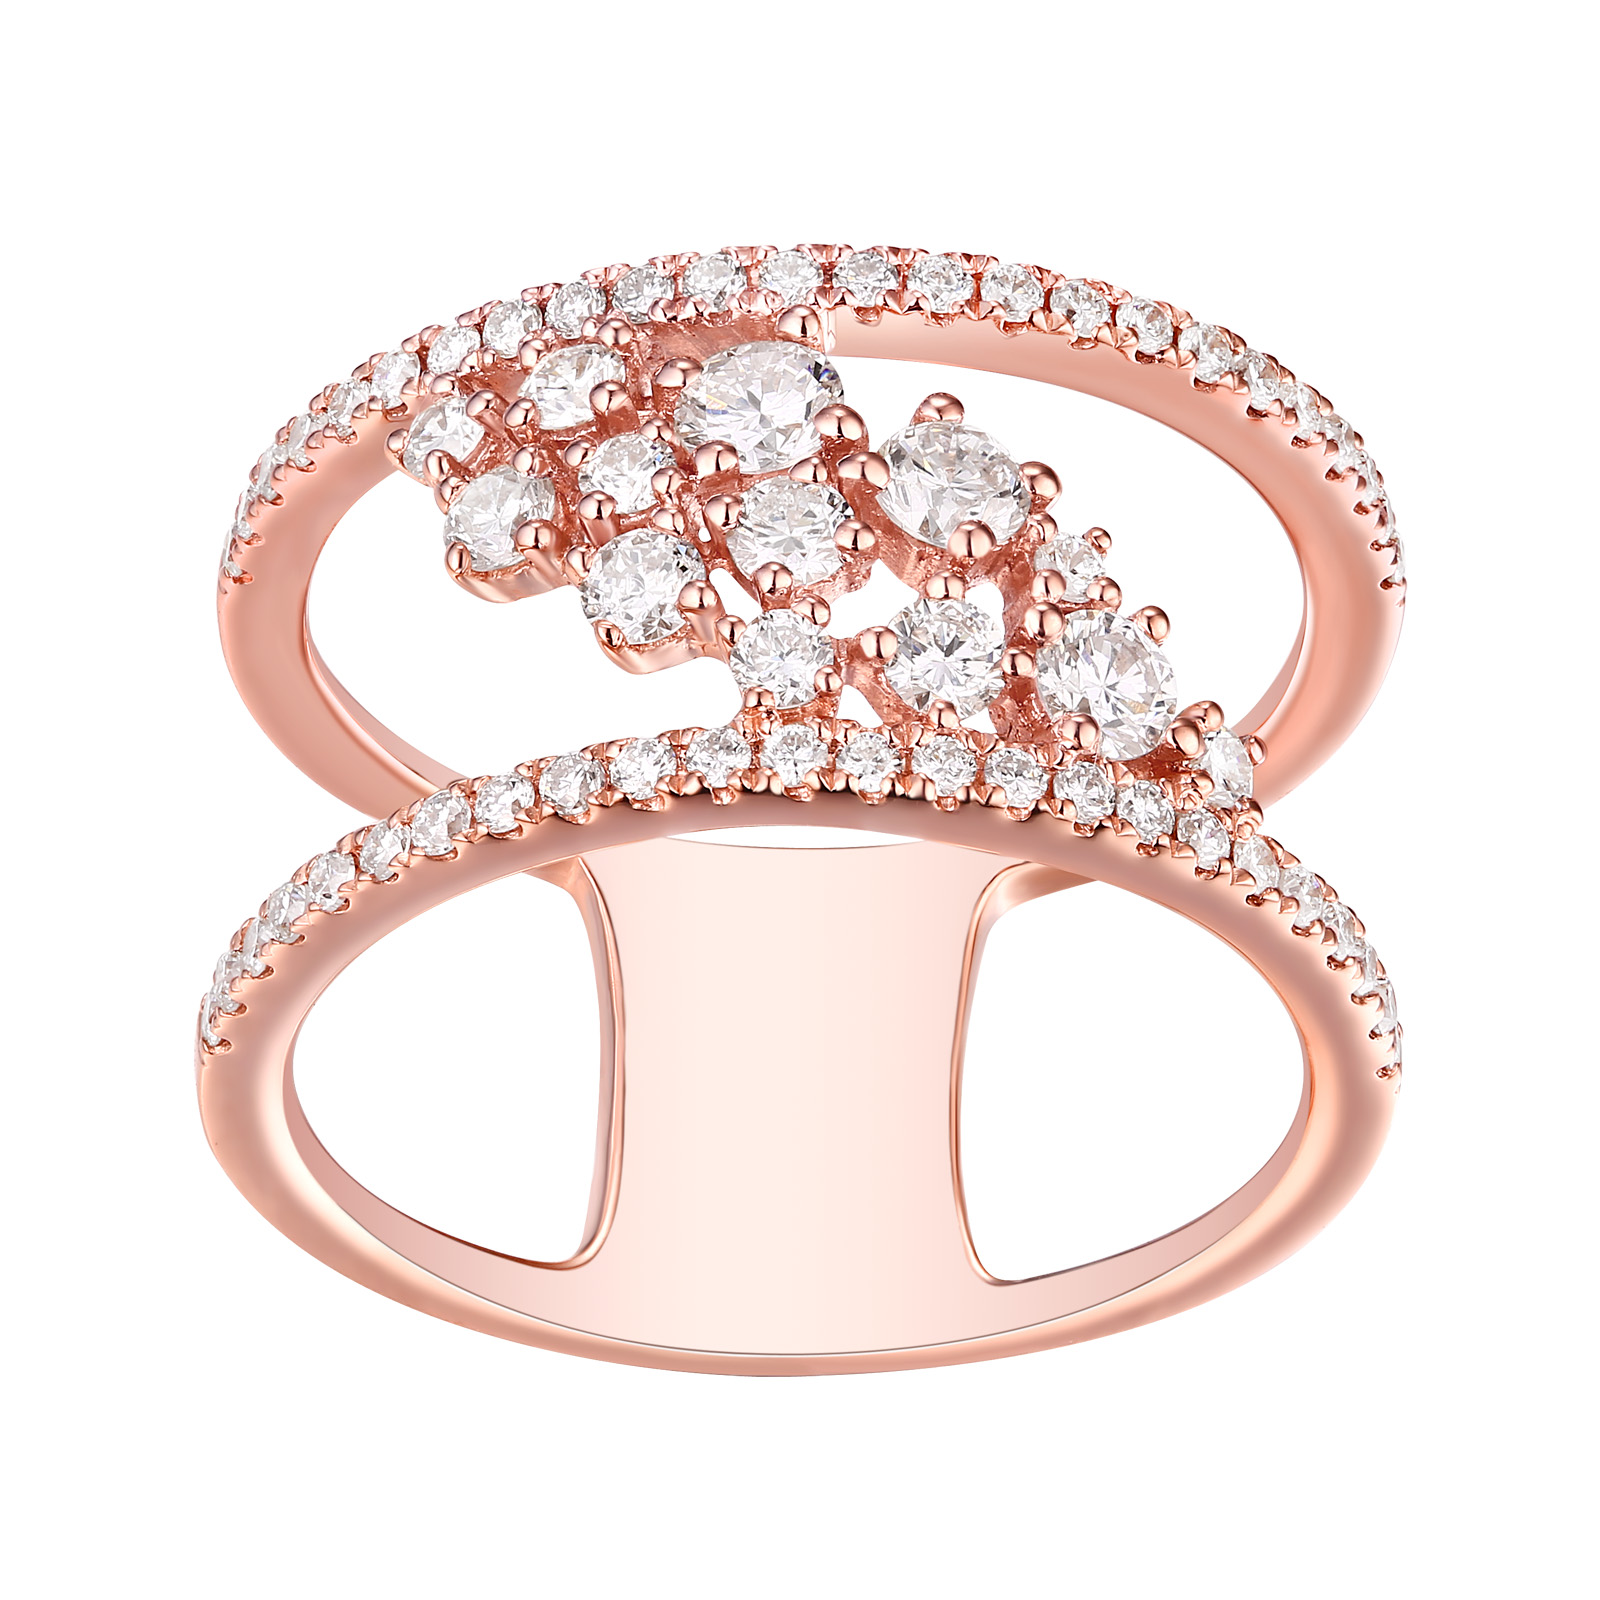 R25521WHT- 14K Rose Gold Diamond Ring, 1.00 TCW